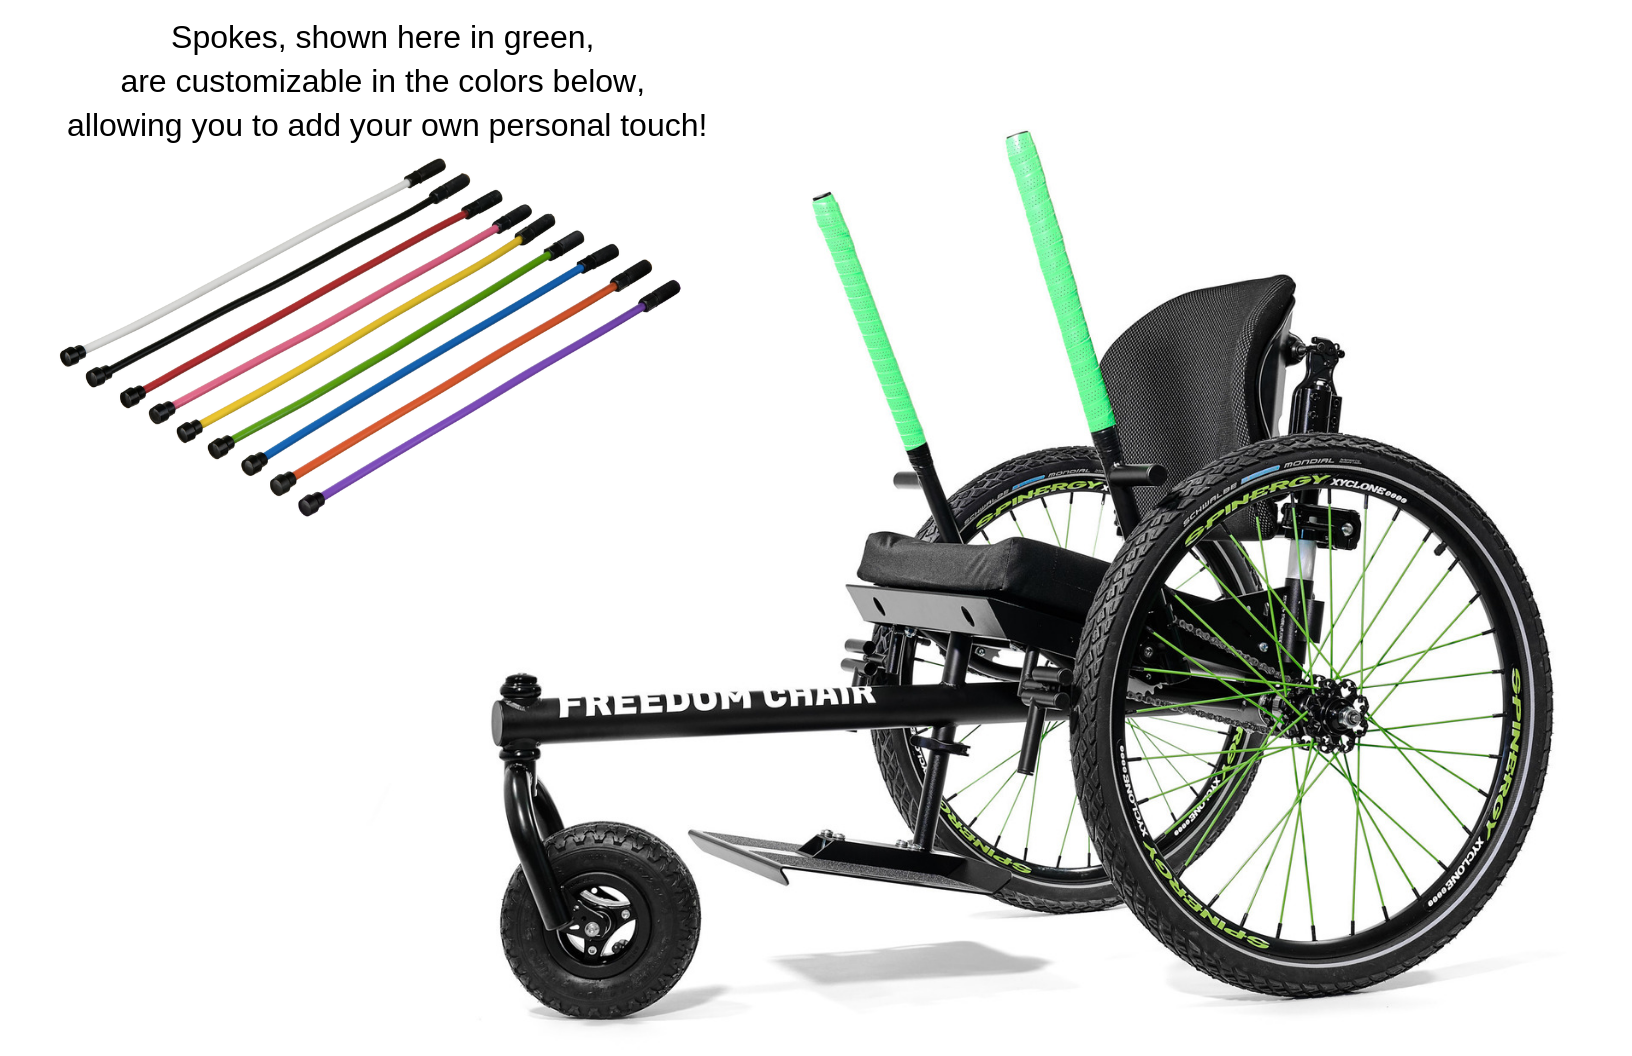 Spokes, shown here in green, are customizable in the colors below, allowing you to add your own personal touch!.png